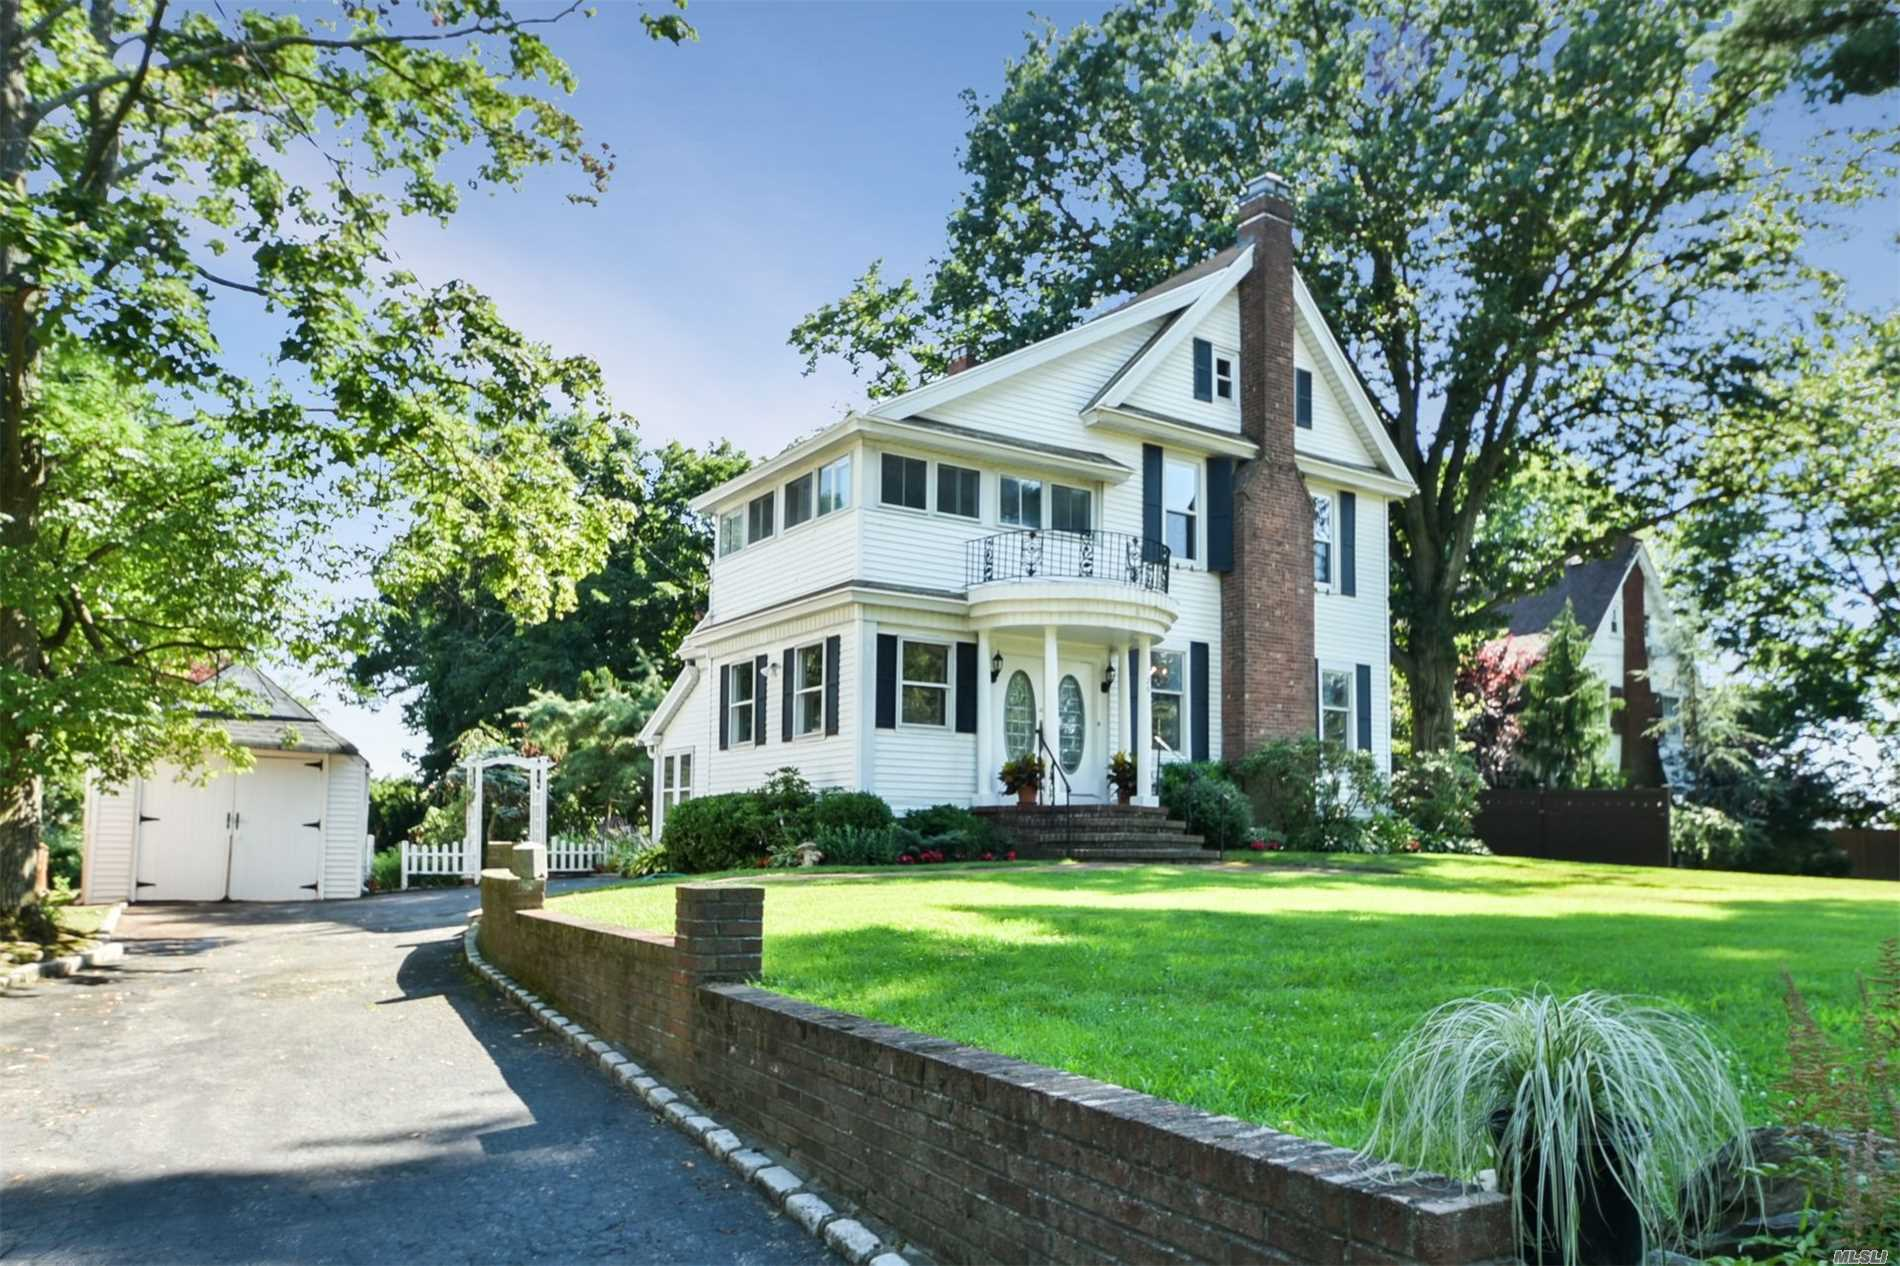 26 Cherry St Douglaston, NY 11363